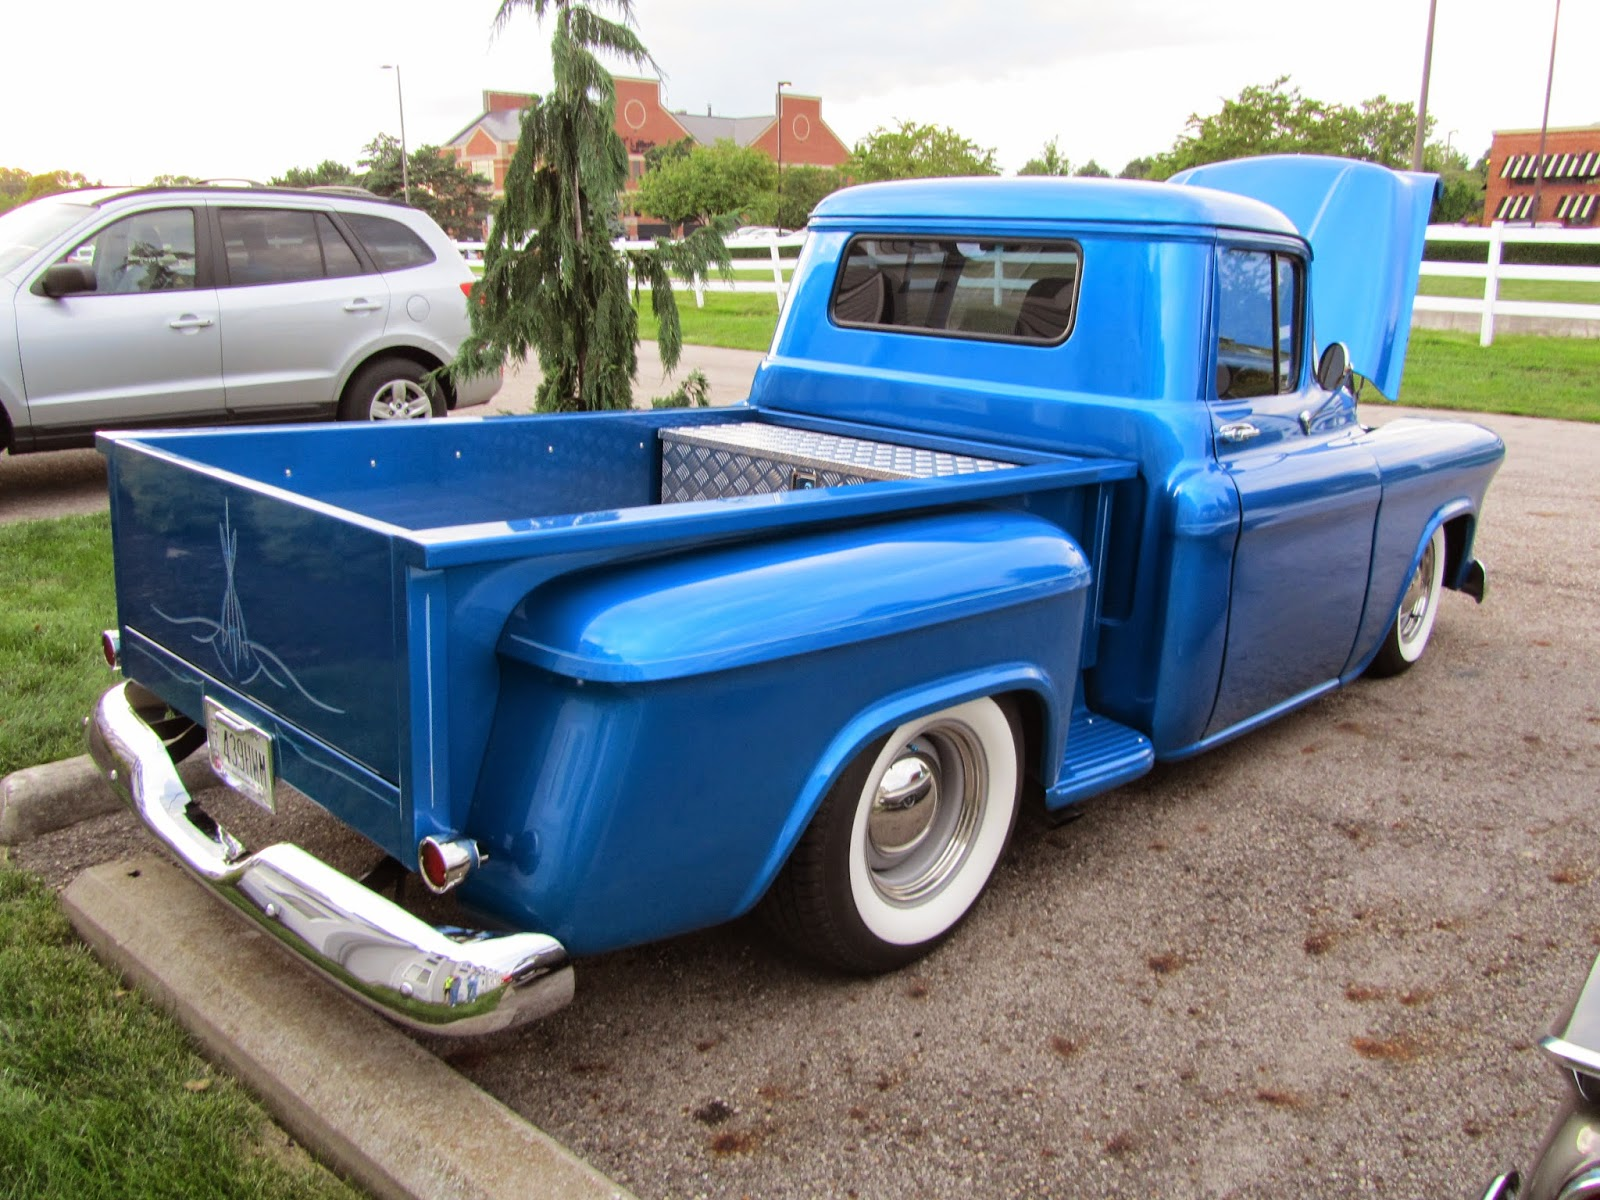 Universal Stepside Truck Beds Marvs And Friends 1949 Dodge After